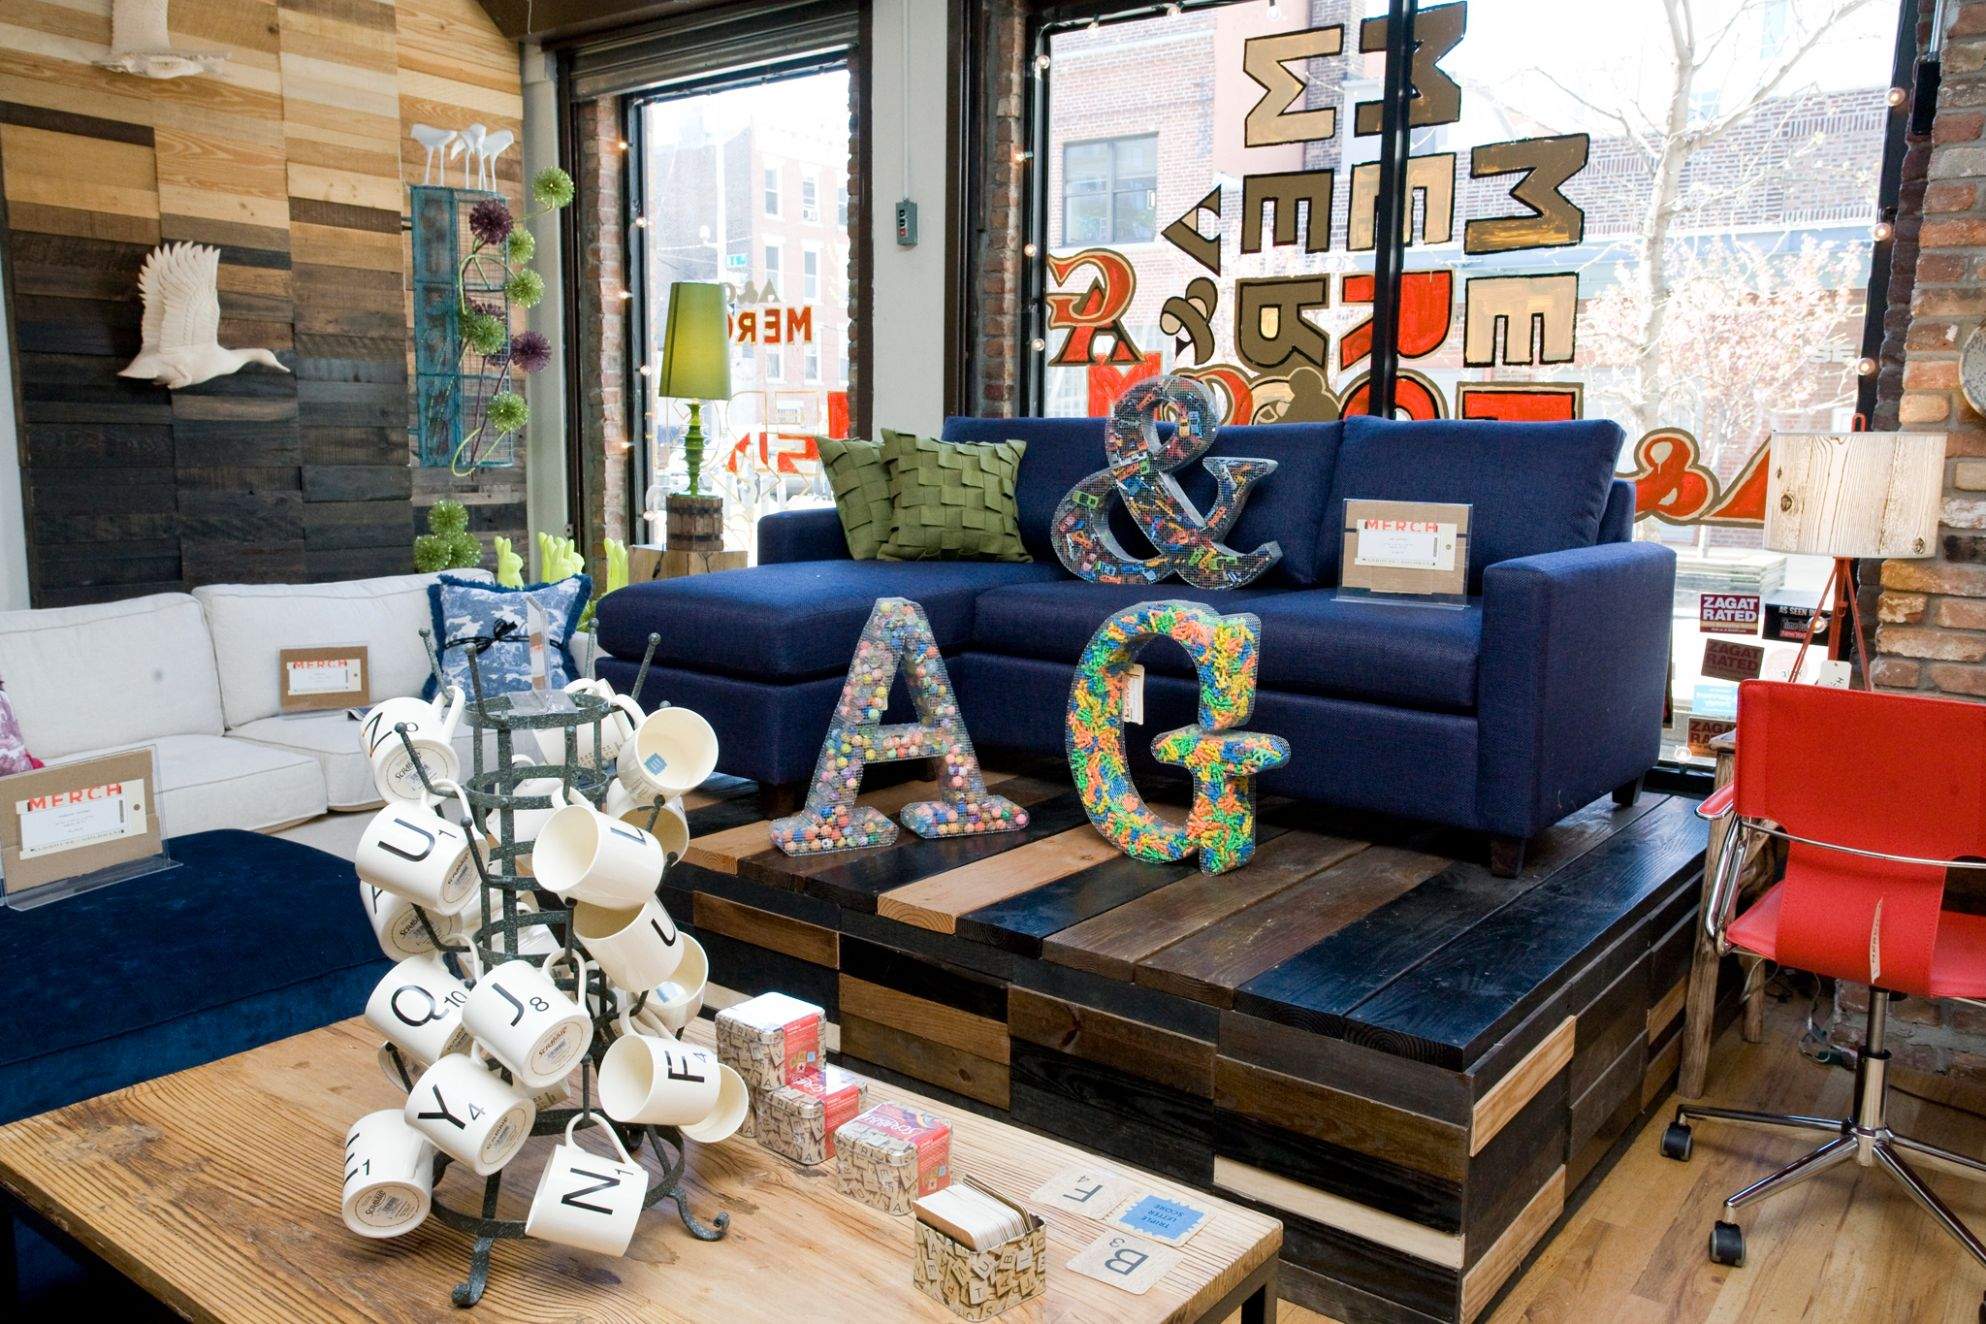 Home decor stores in NYC for decorating ideas and home furnishings - home decor nyc